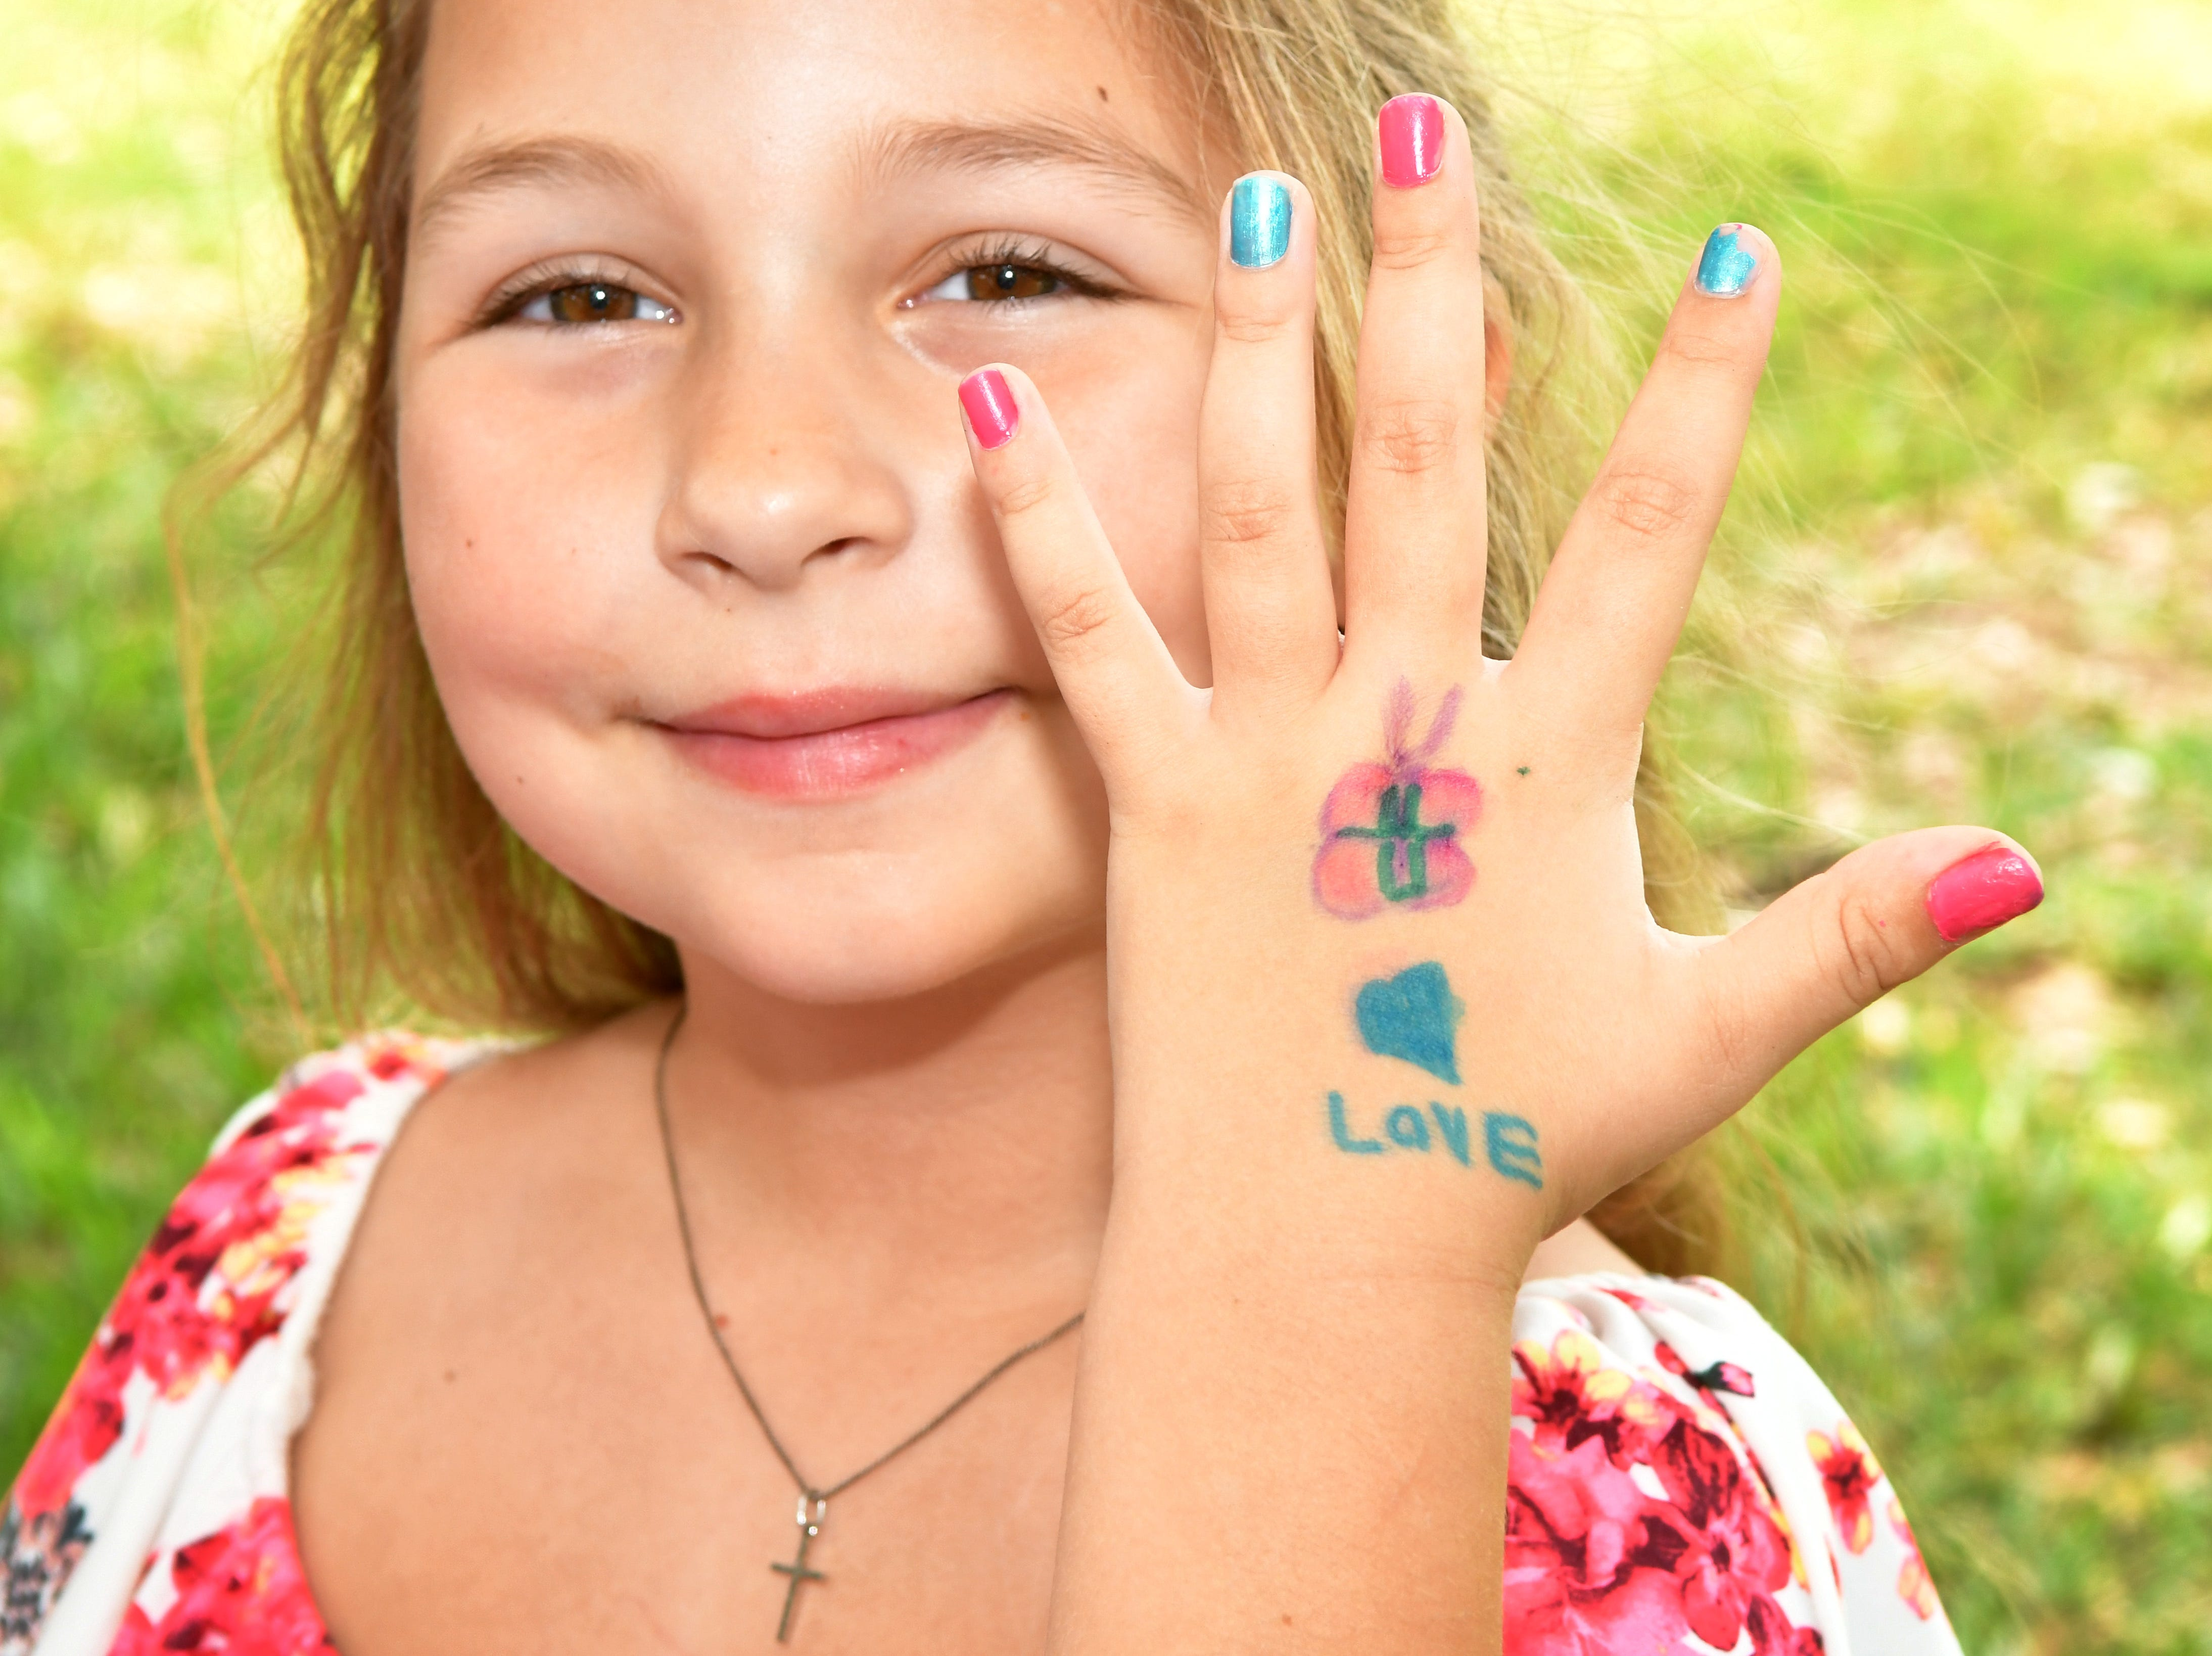 Addison Harris, 6, painted her nails and drew a message of love on her hand. Eastminster Presbyterian Church held a free Palm Sunday Funday following a traditional morning service. Activities included several animals from Cox Farms, Jazz music by the Ron Teixeira Trio, crafts, food, egg hunts, and  more. This Indialantic church, which is over 75 years old, will hold several series on Easter Sunday.